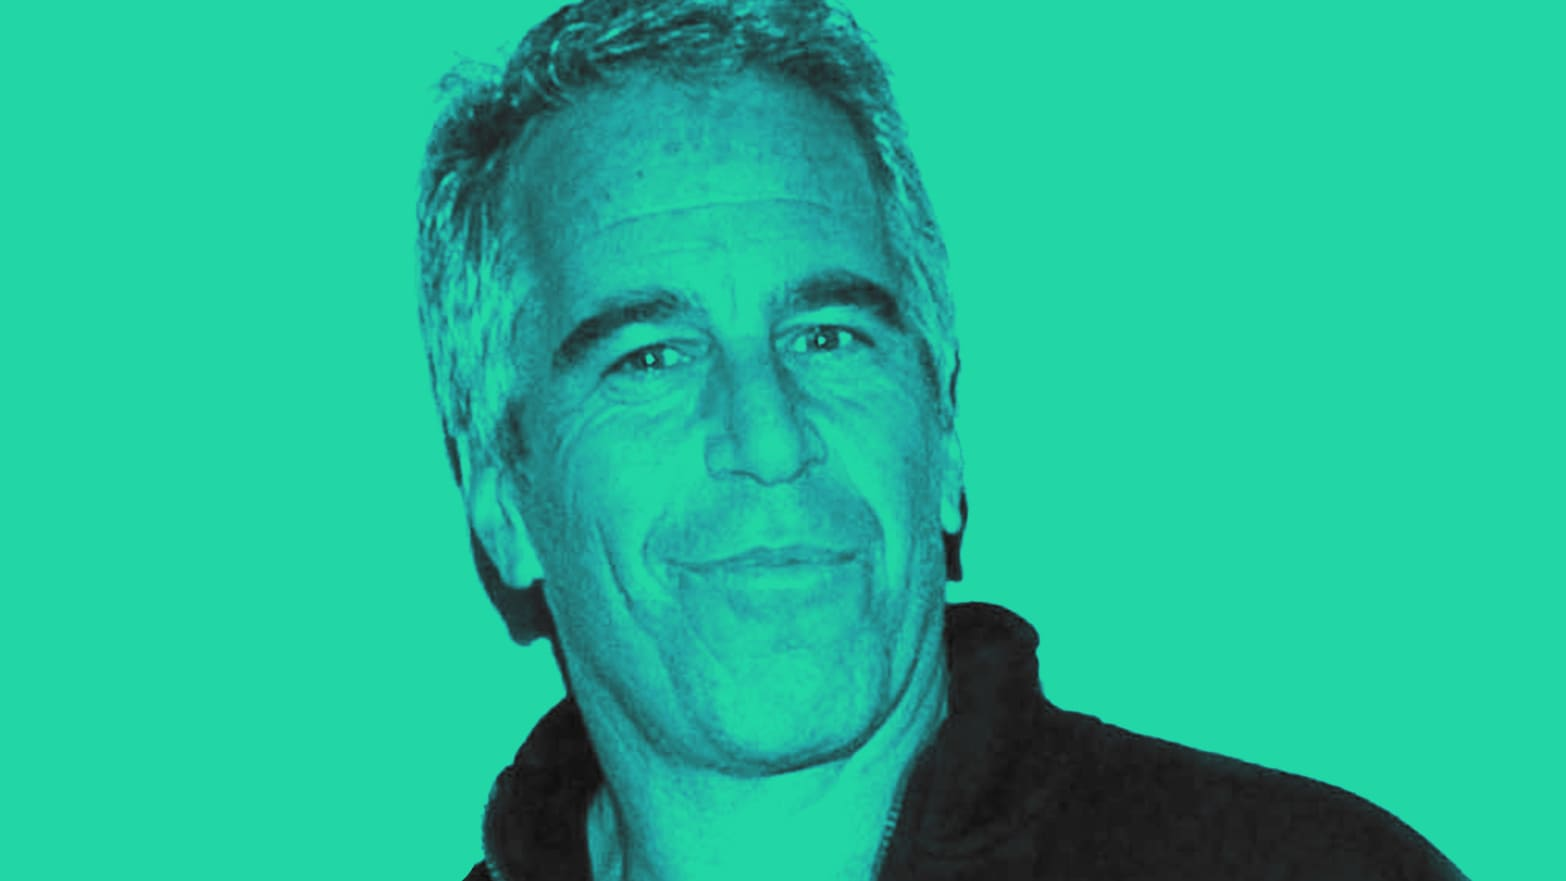 Congress Rushes to Respond to Jeffrey Epstein Death Before Conspiracies Take Over